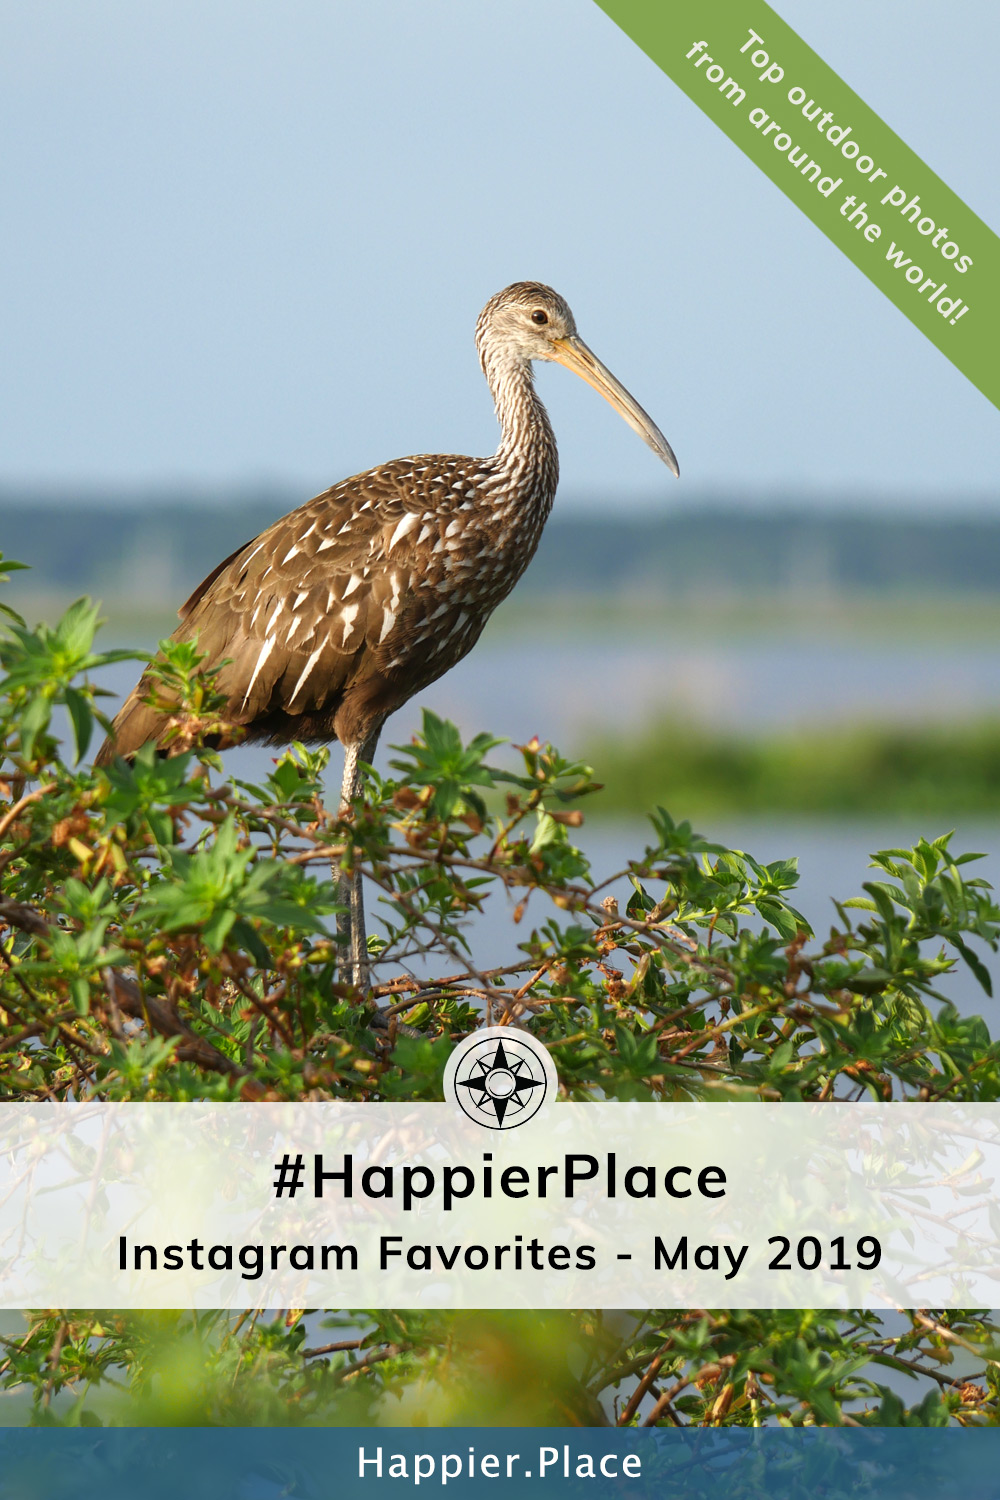 #HappierPlace Instagram Favorites: May 2019